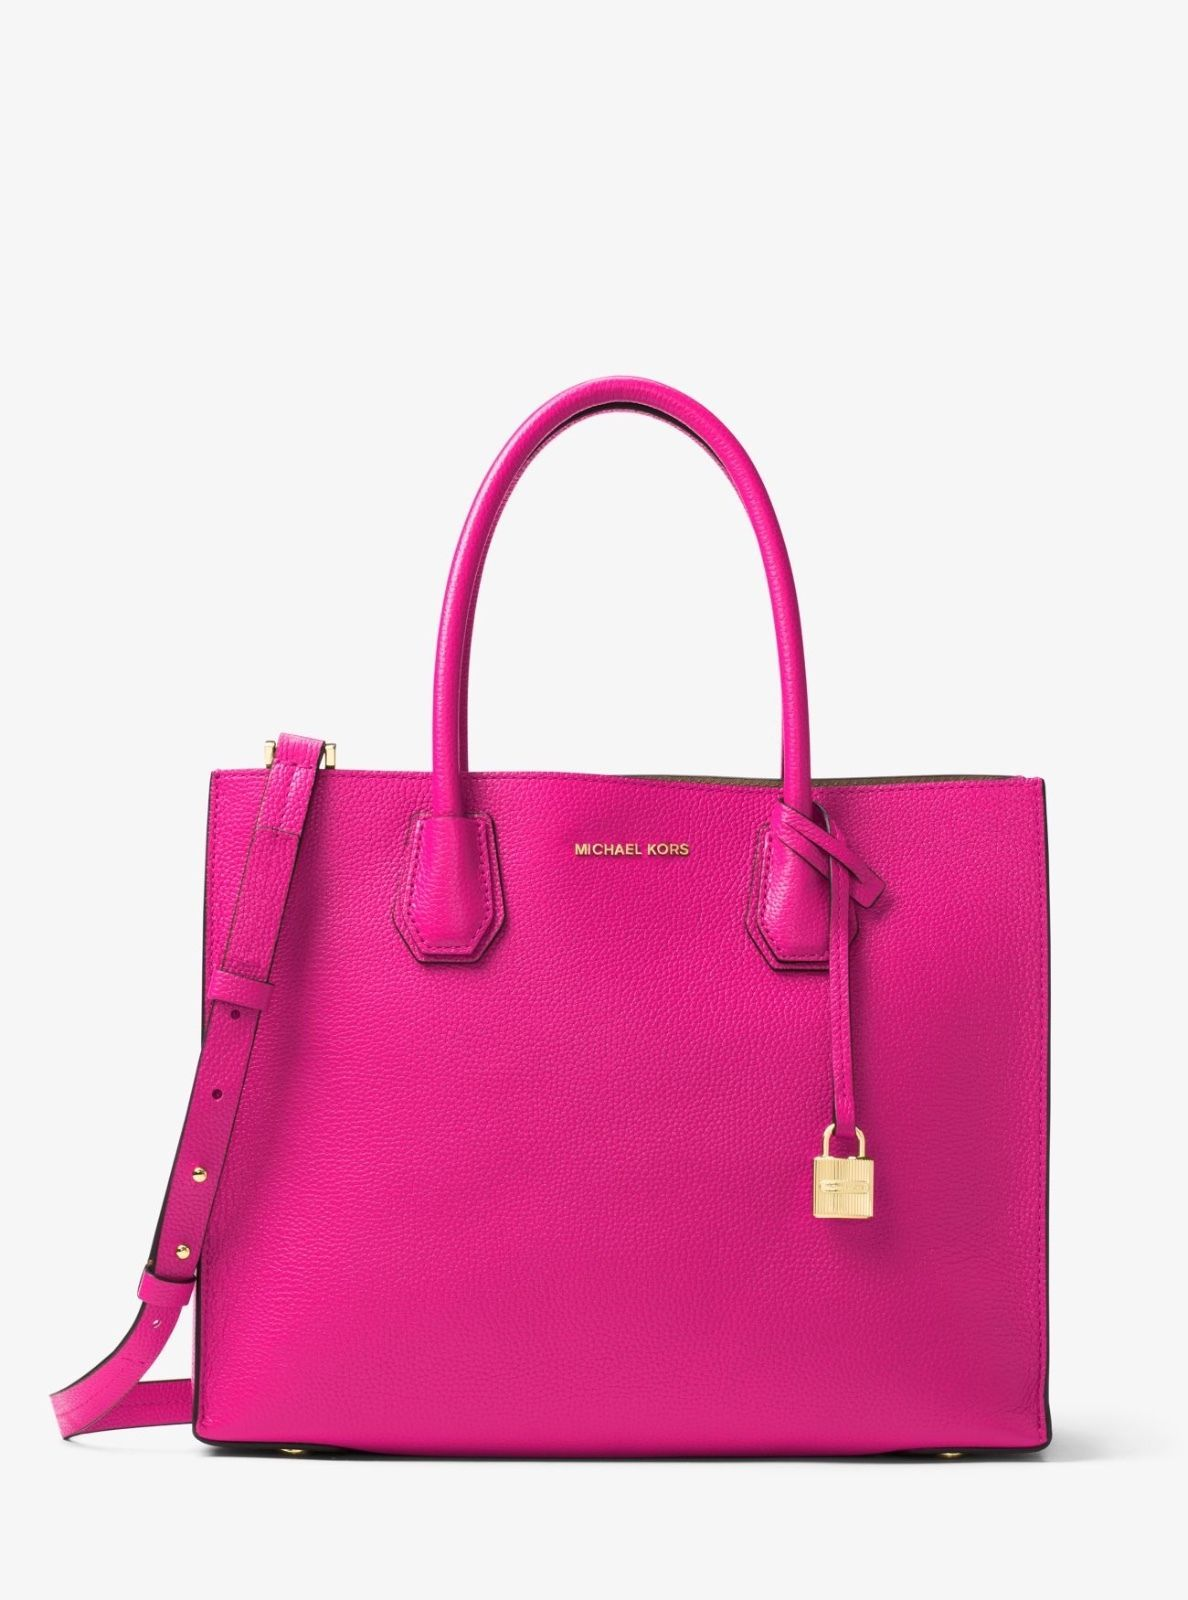 Michael Kors Mercer Large Convertible Raspberry Leather Tote Bag Ebay